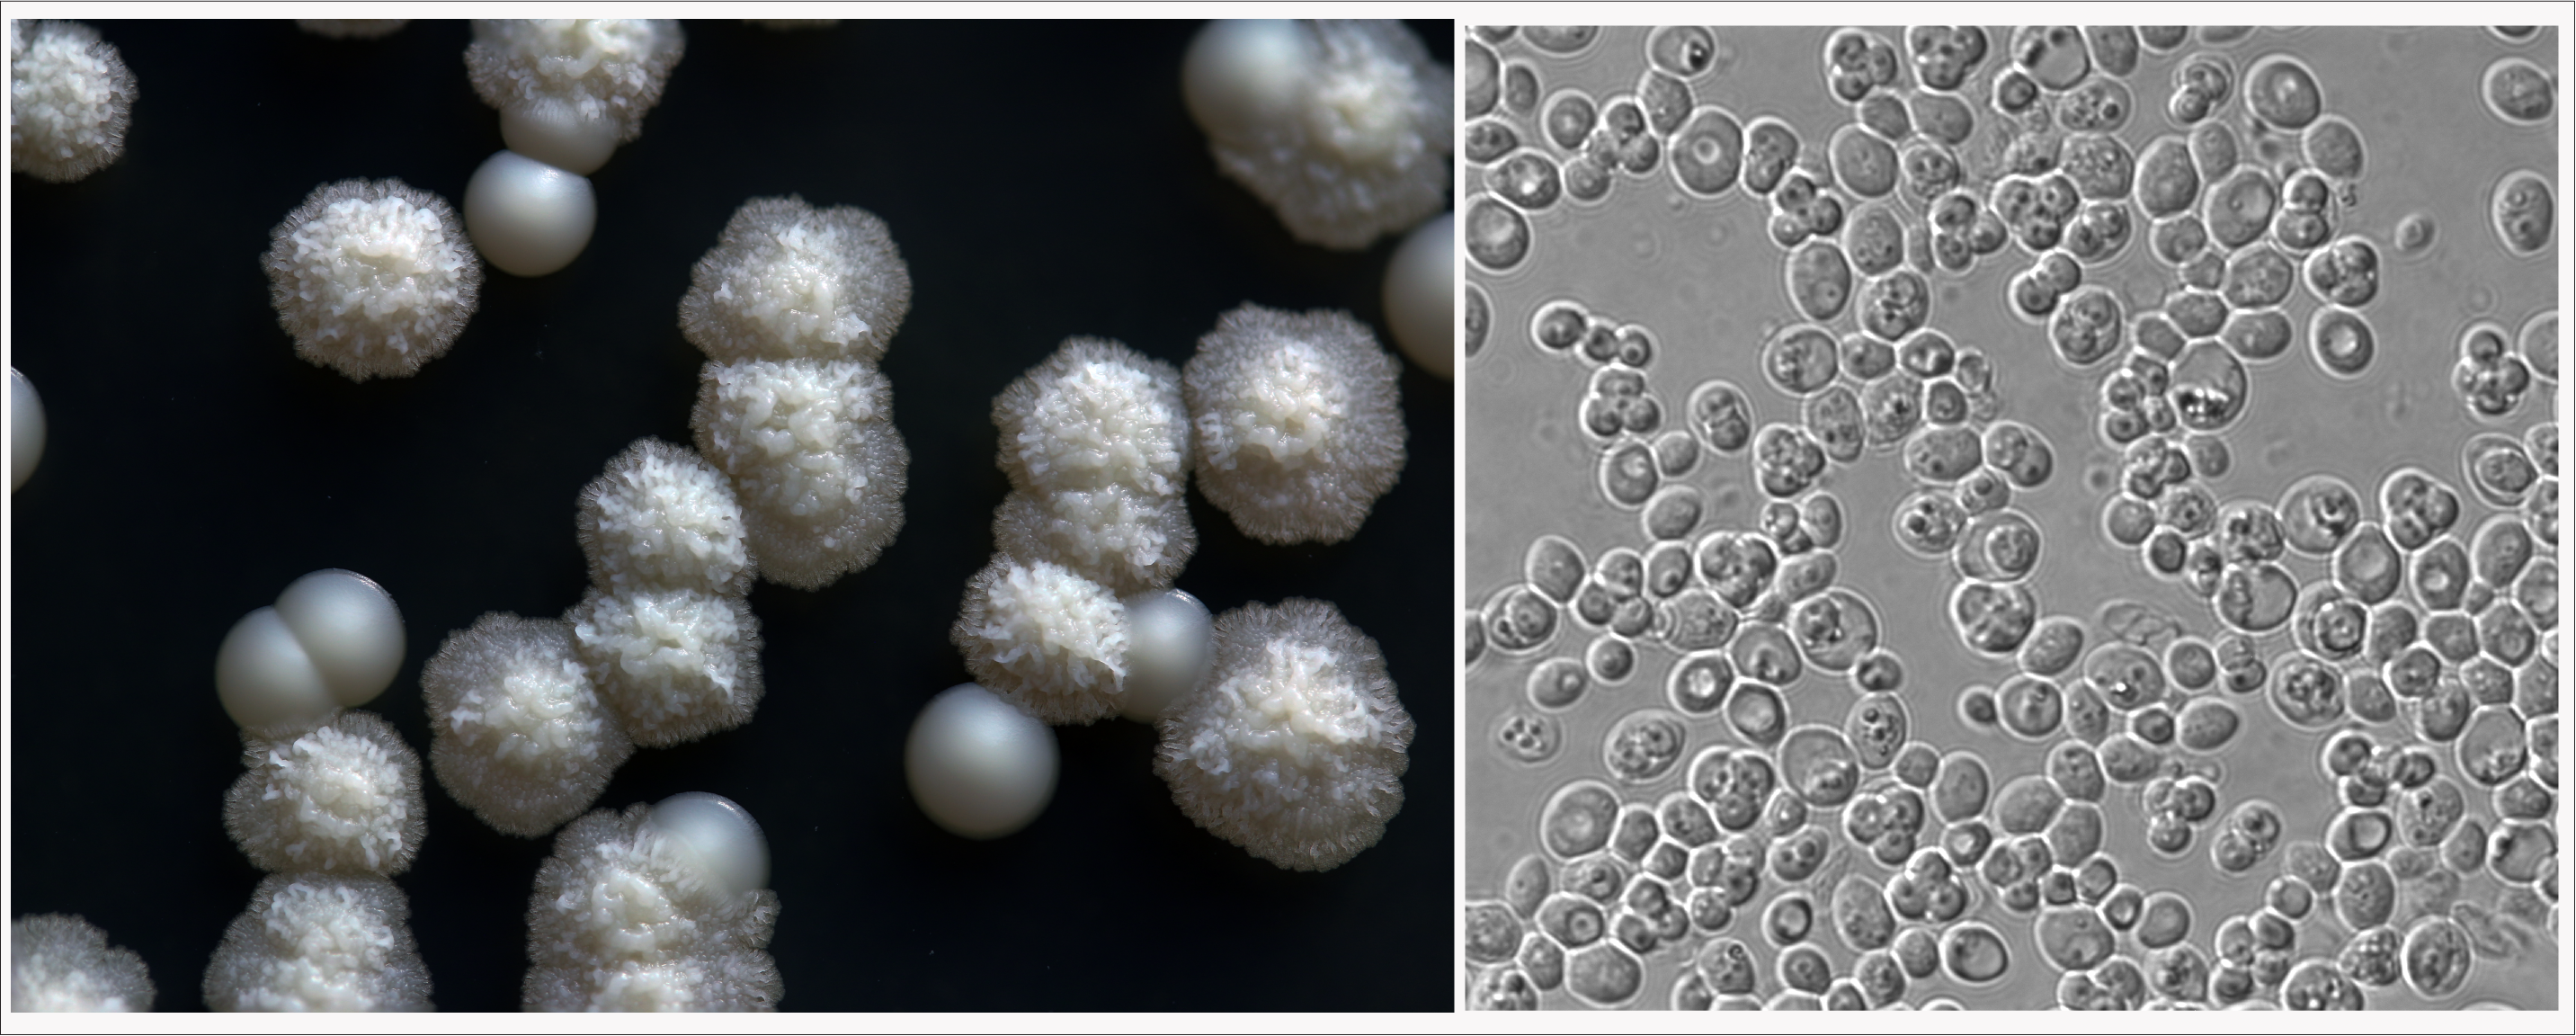 Left: N. castellii are the smaller, smooth white colonies.  The fuzzy colonies are Pichia fermentans.  Right: N. castellii cells at magnification.